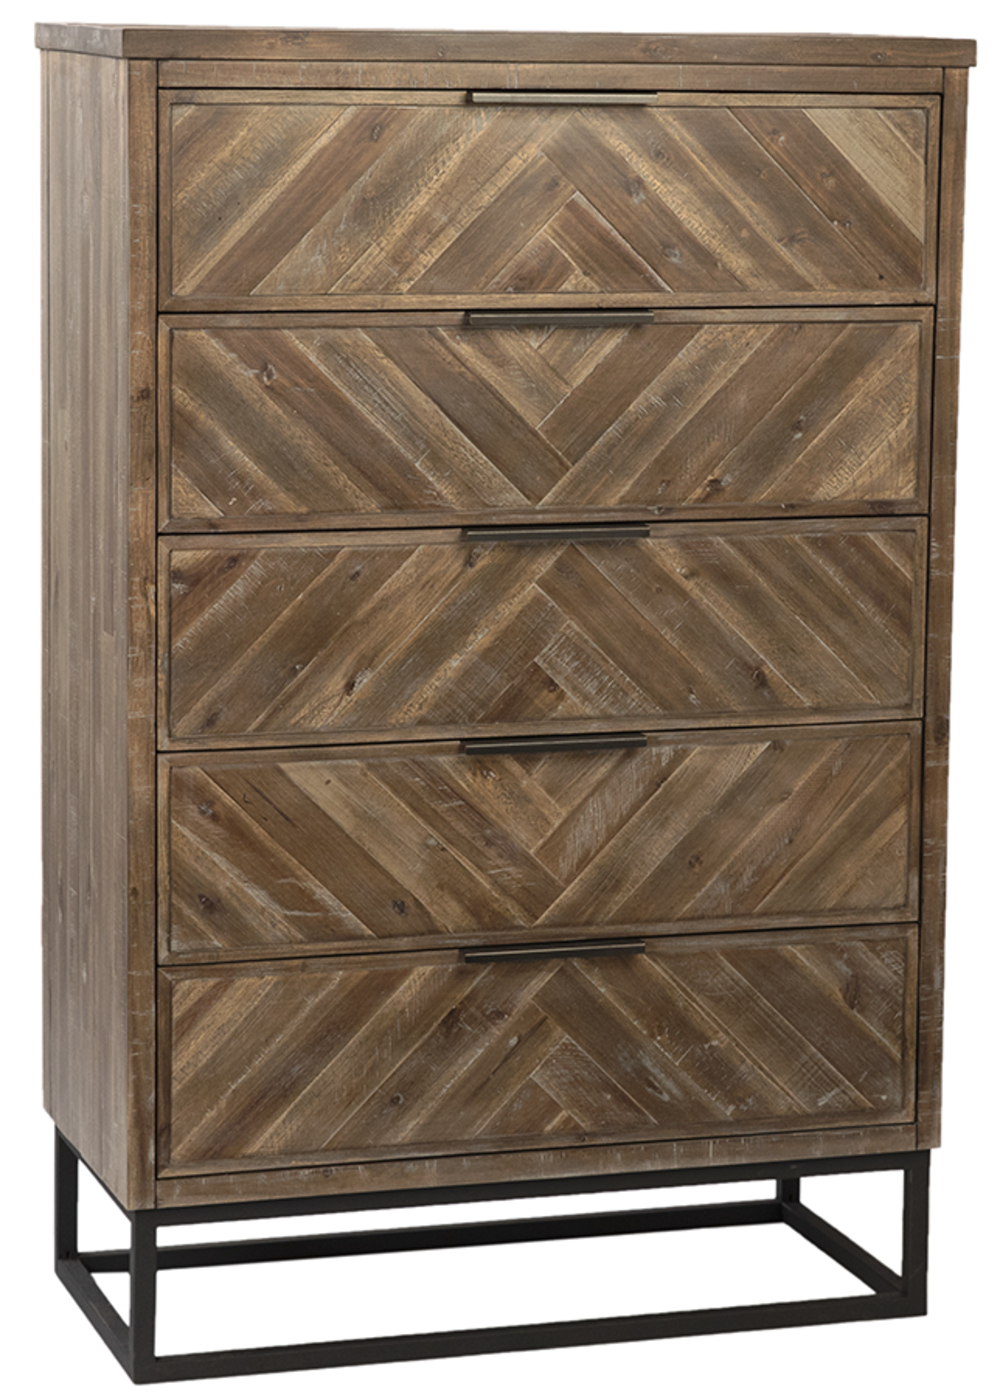 Dovetail Furniture - Holbrook Chest